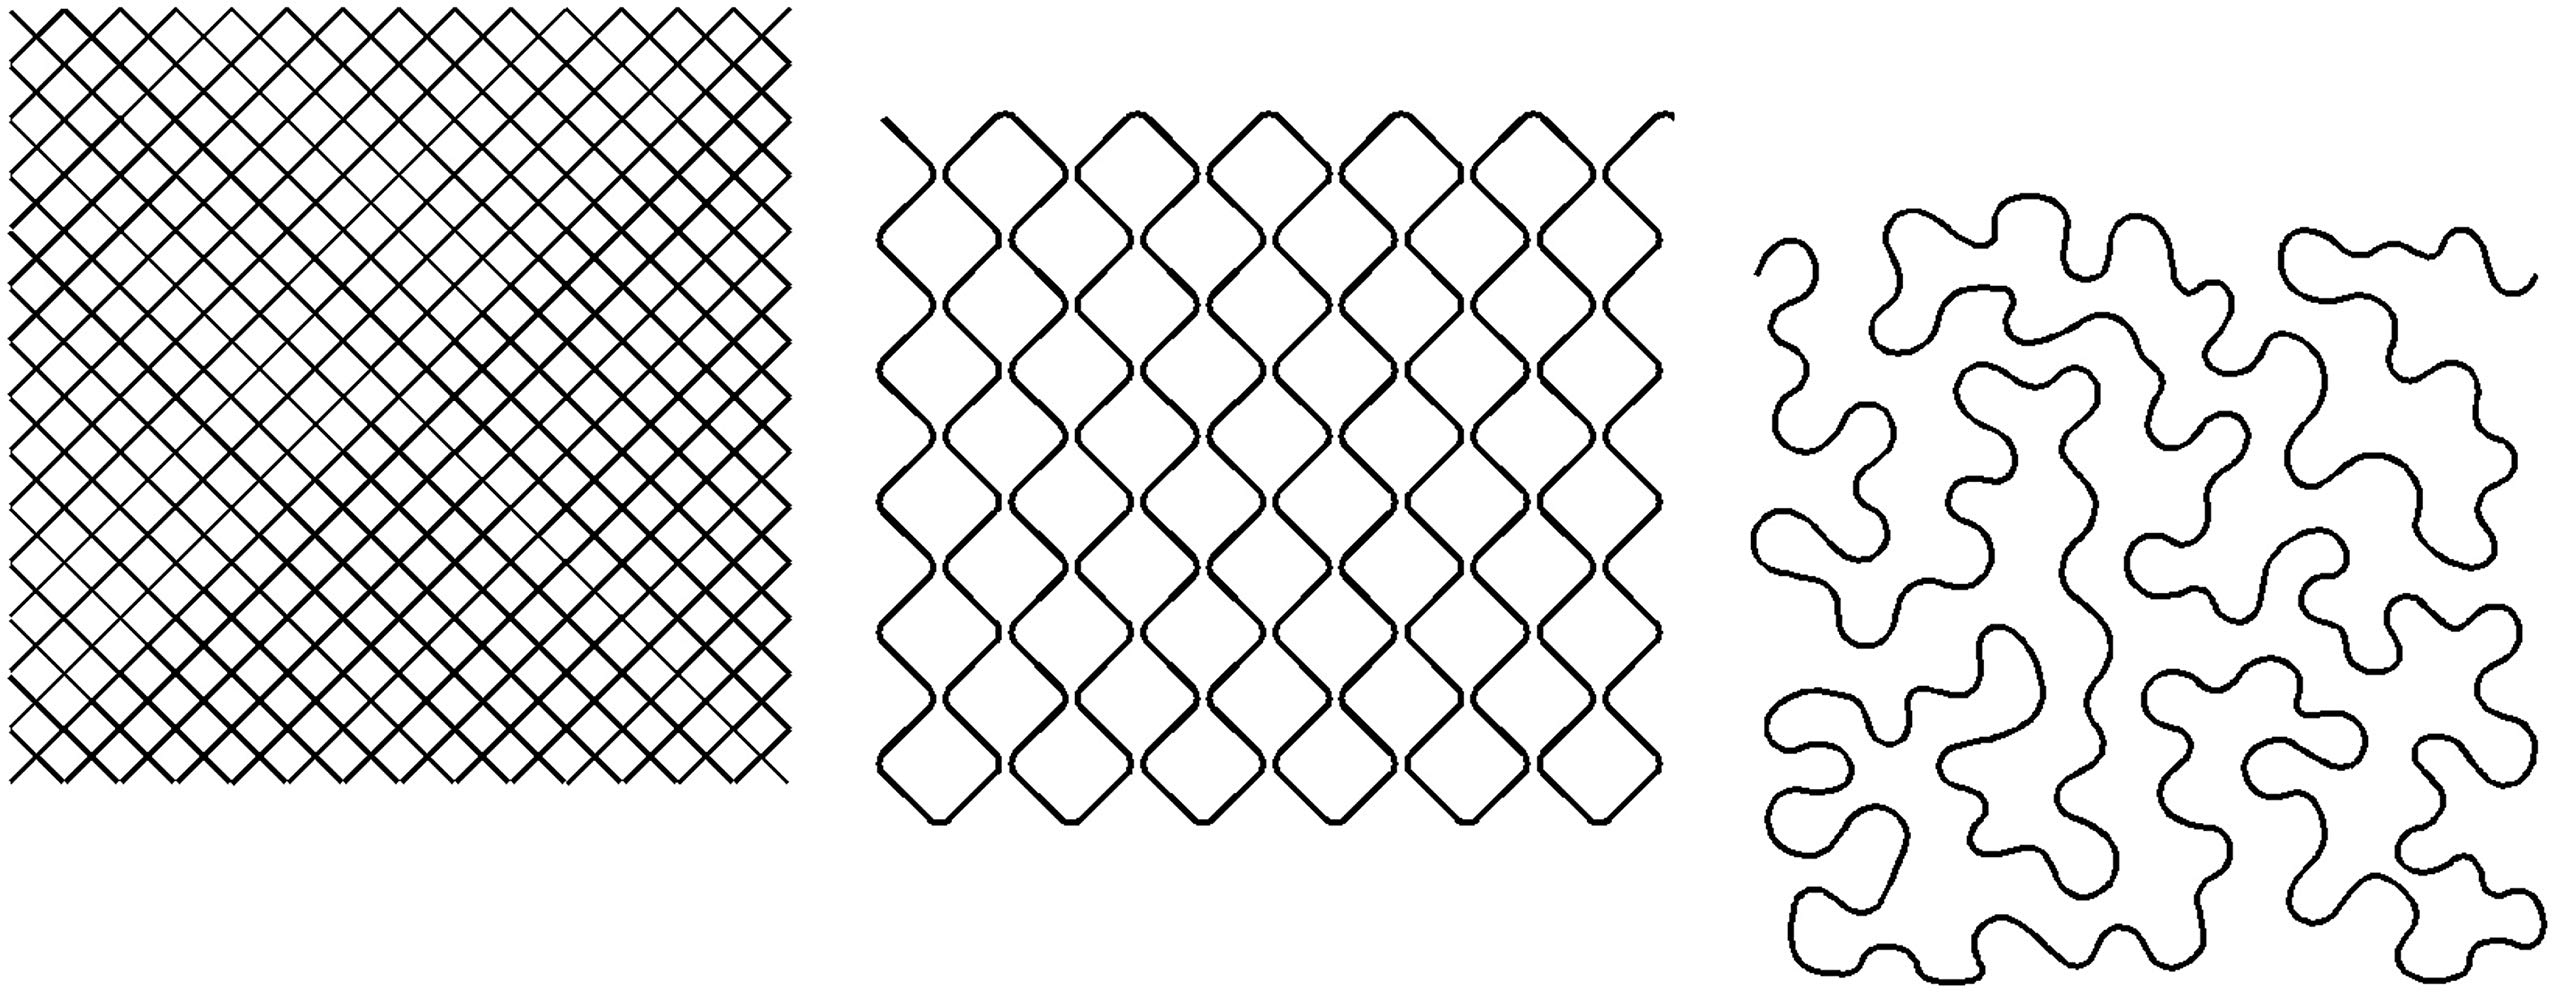 Quilting Creations Stencils for Machine and Hand Quilting | Background, Grid, Continuous Line Patterns | Square Grids, Mock Crosshatch, Large Stipple | Set of 3 Quilt Plastic Stencils by Generic